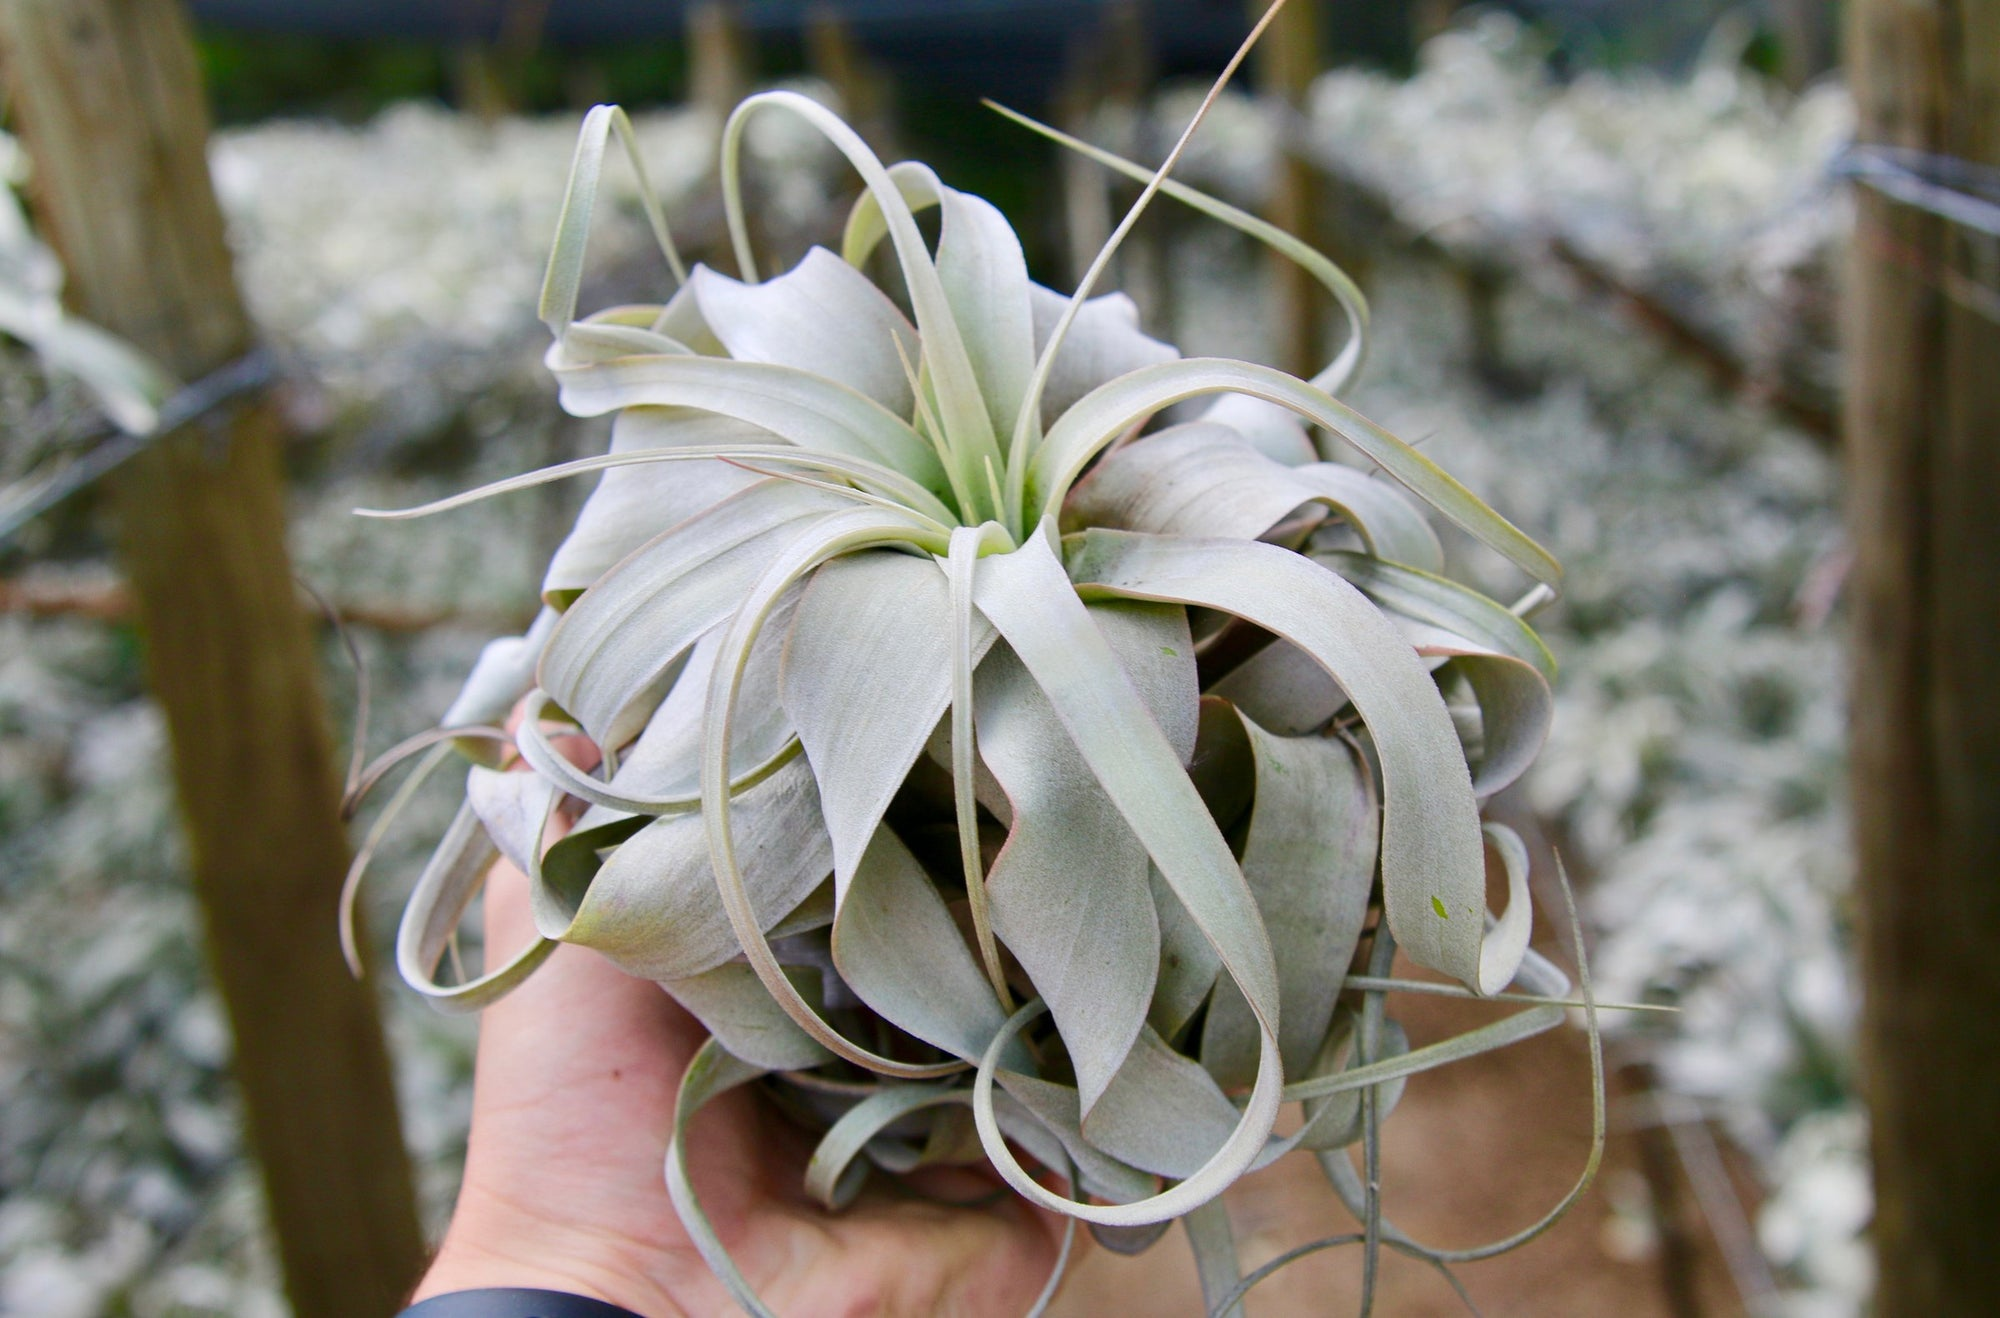 Wholesale: Medium Tillandsia Xerographica Air Plants / 5-6 Inches Across [Min Order 12] from AirPlantShop.com